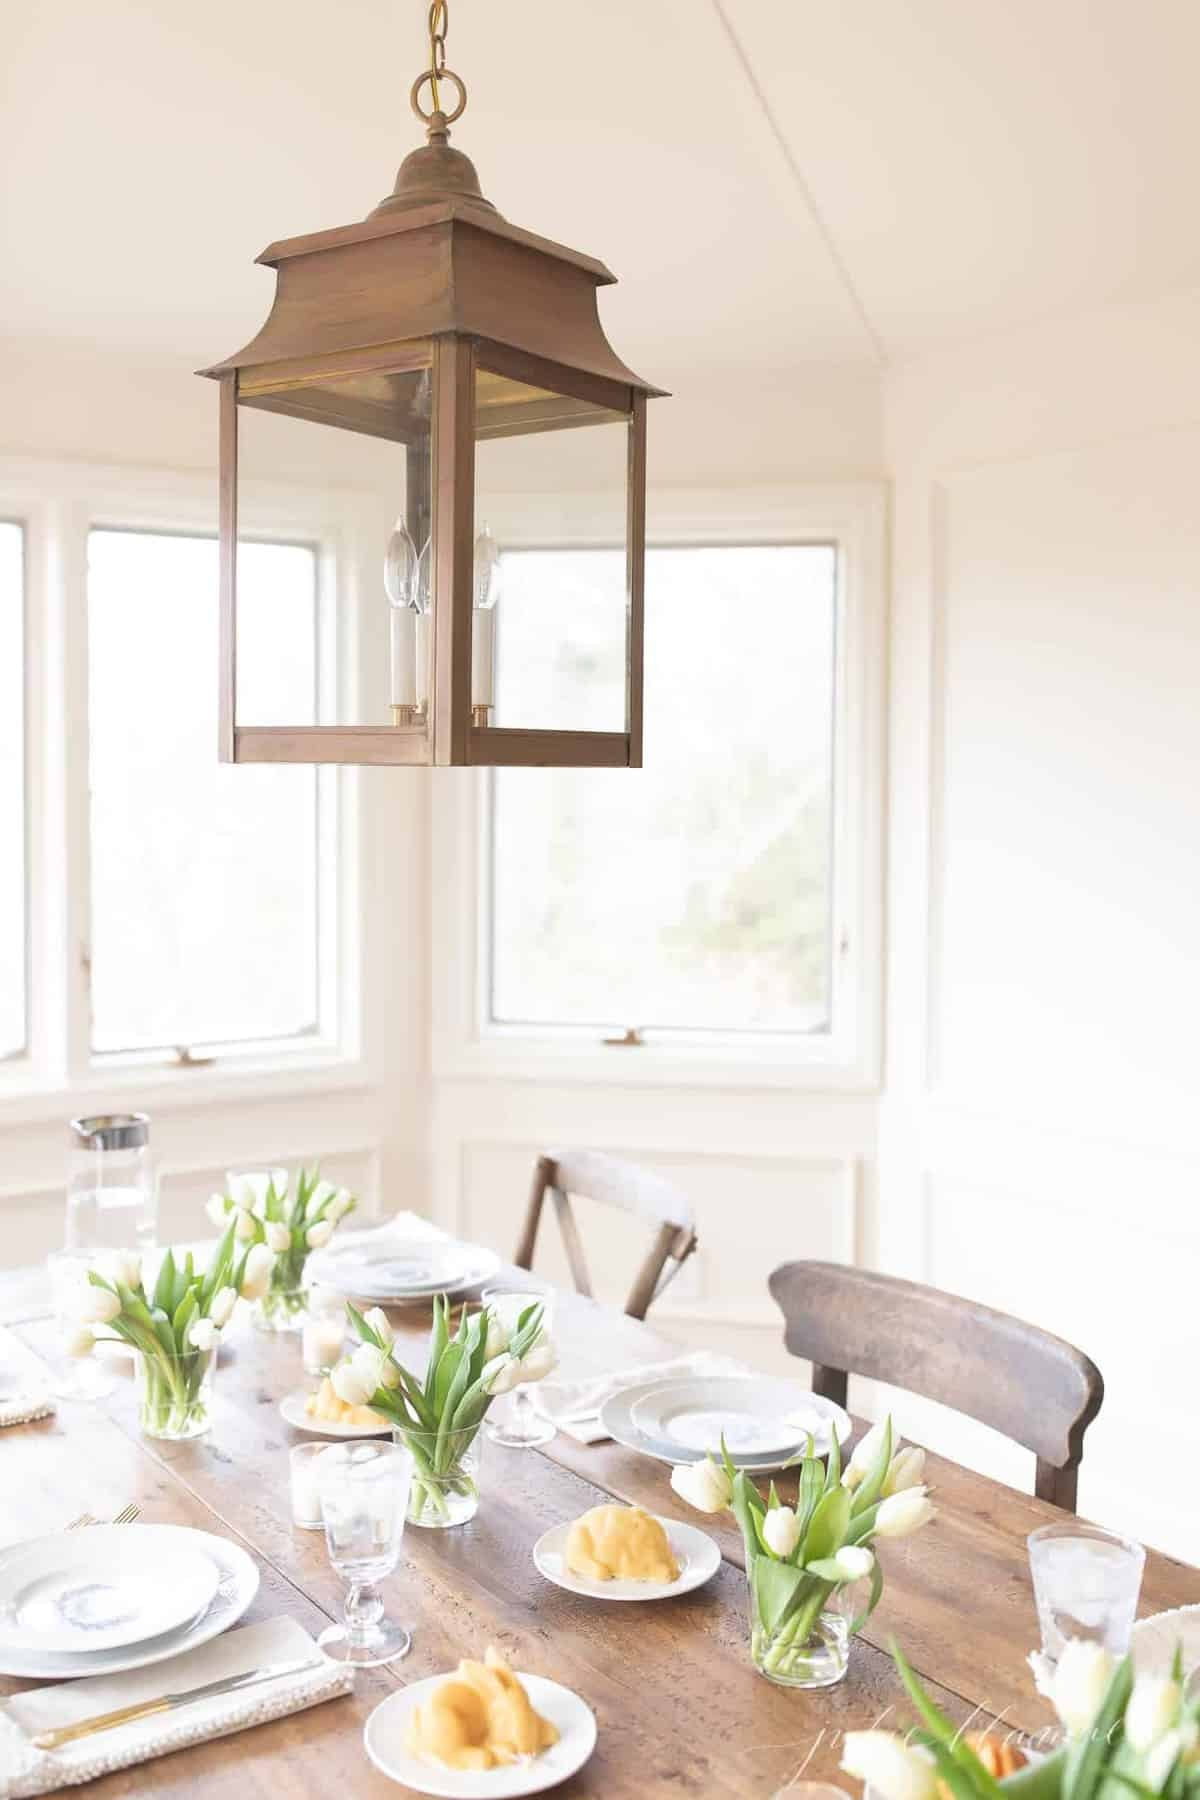 A white dining room with an Easter centerpiece of tulips in small vases